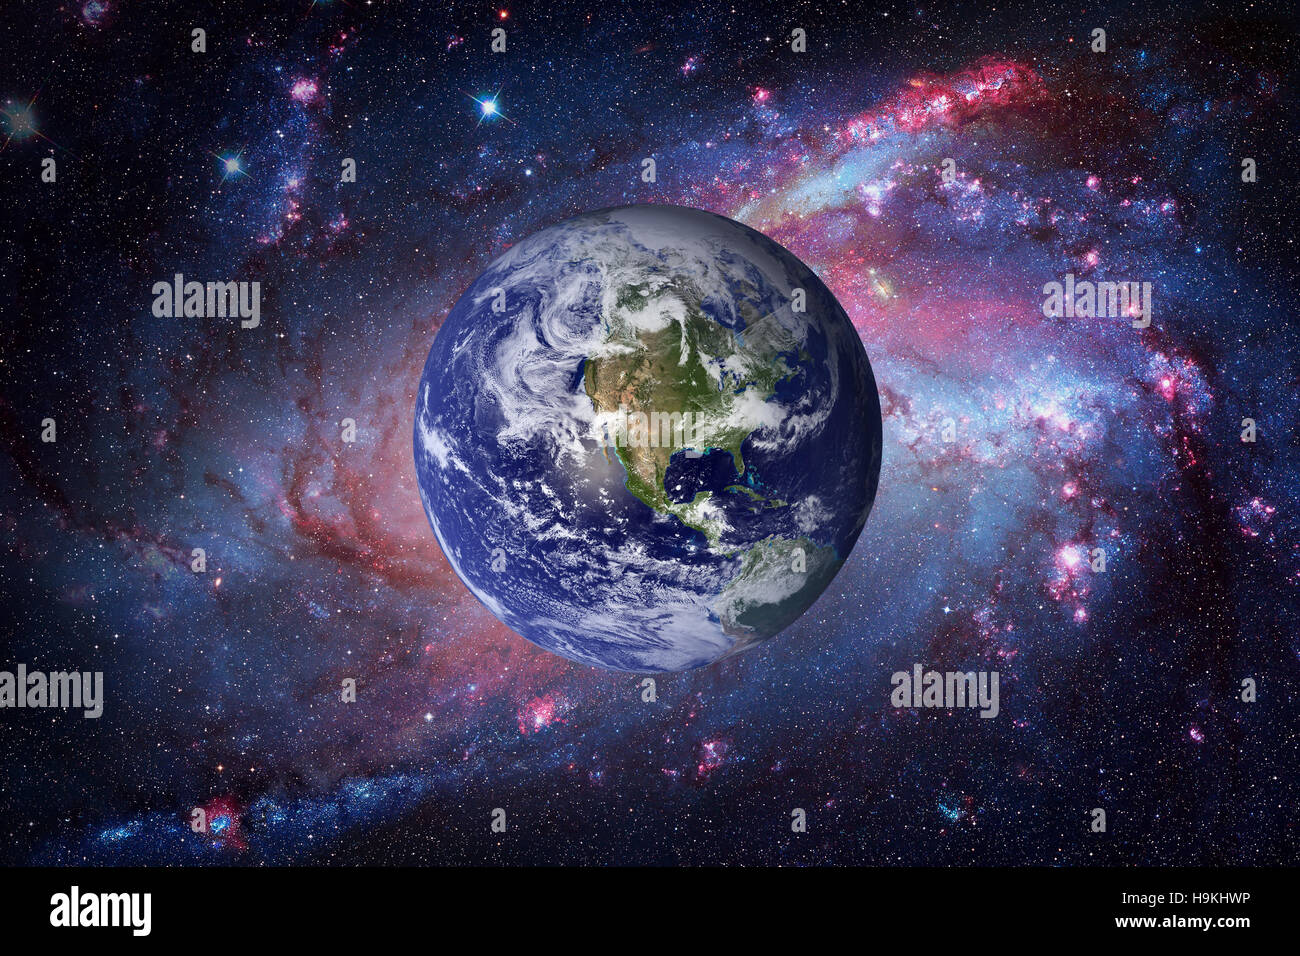 Planet Earth from space. Elements of this image furnished by NASA. - Stock Image